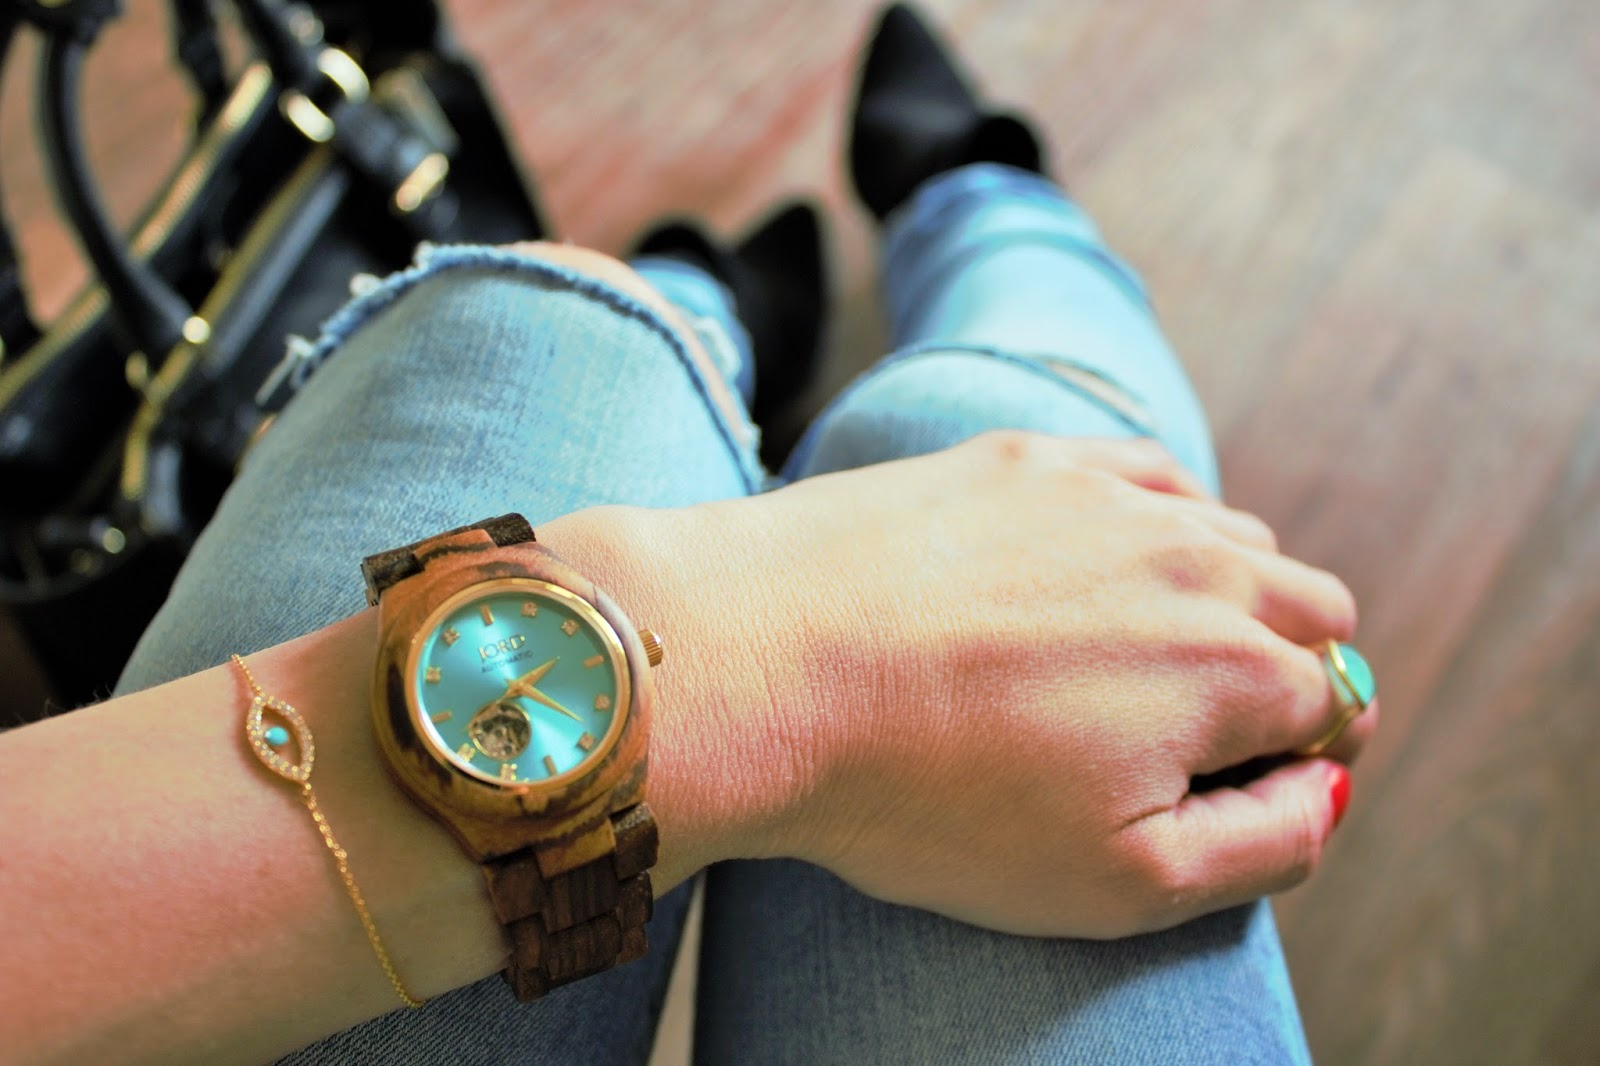 Jord Watch and Accessorize bracelet